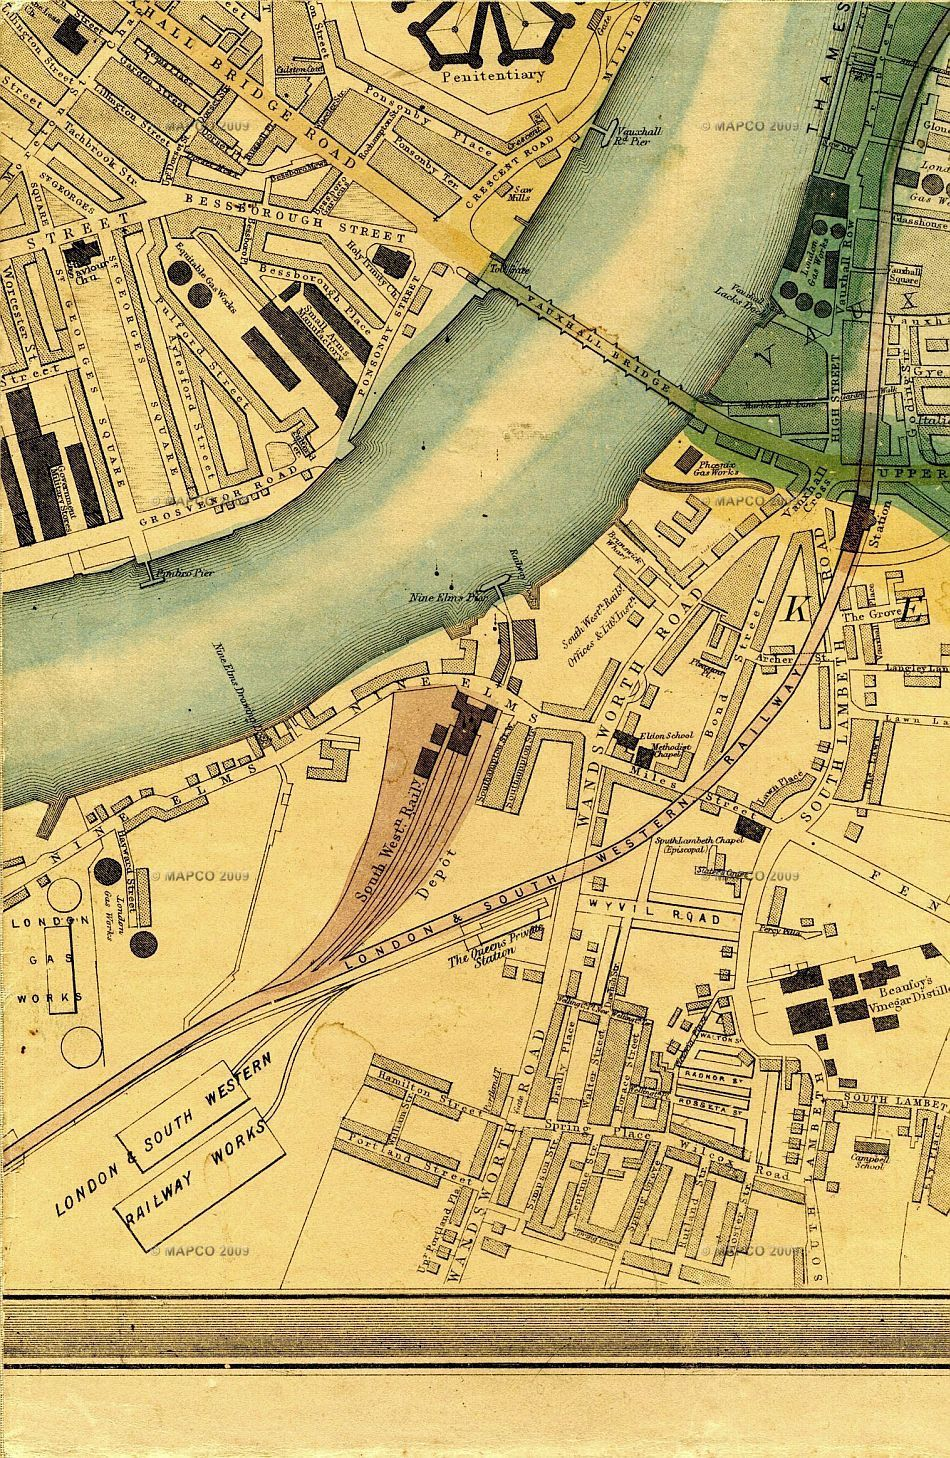 Pimlico London Map.Click Here For An Enlarged Map Image Pimlico Pinterest Map